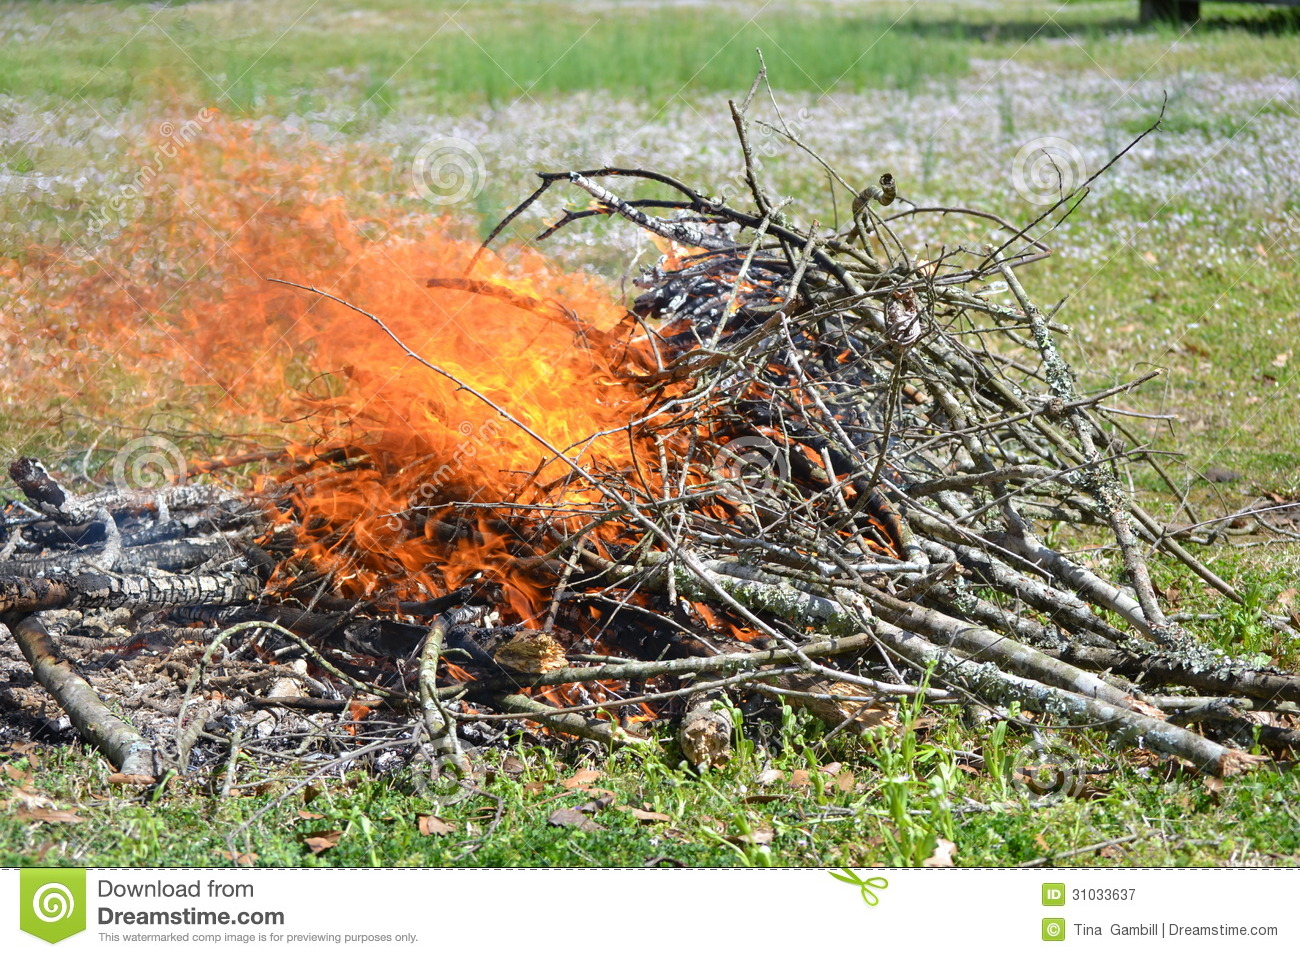 how to clear brush from land